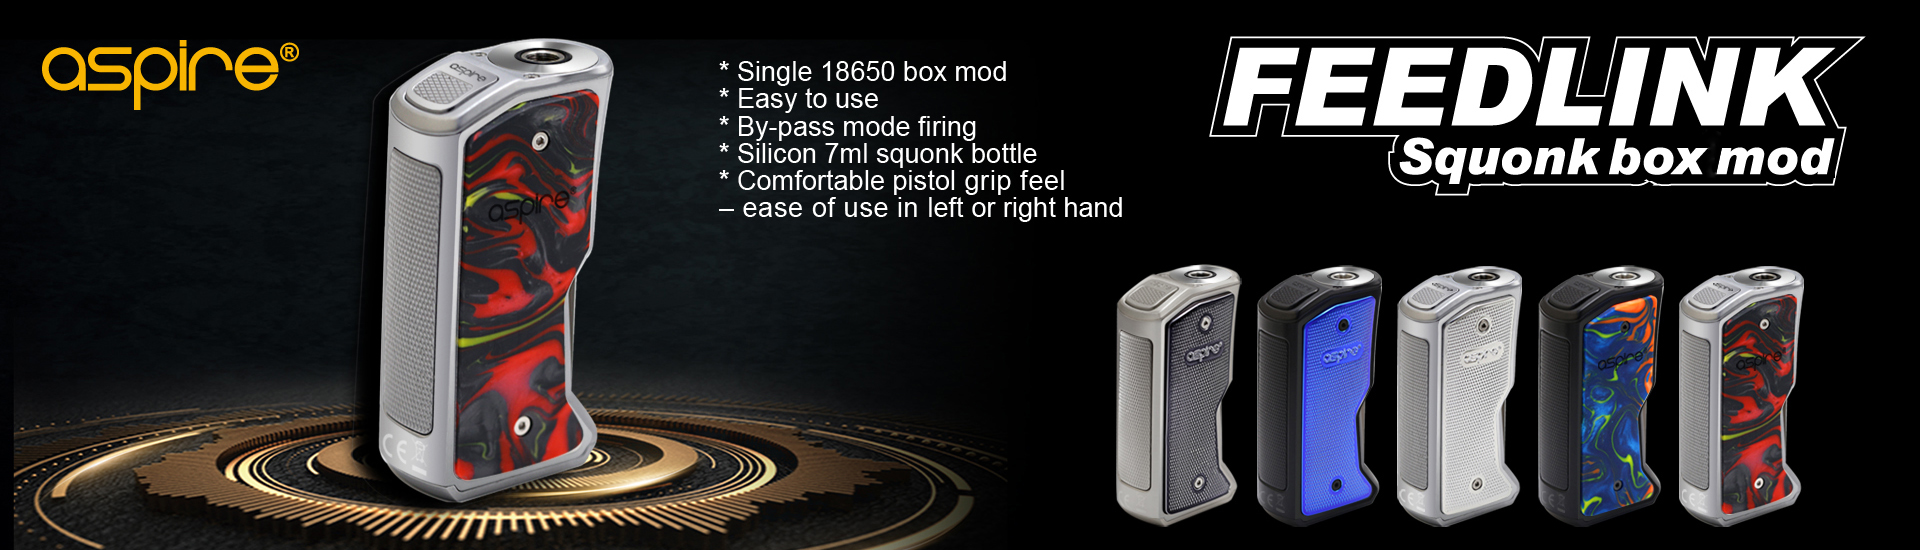 Aspire Feedlink Box Mod Review